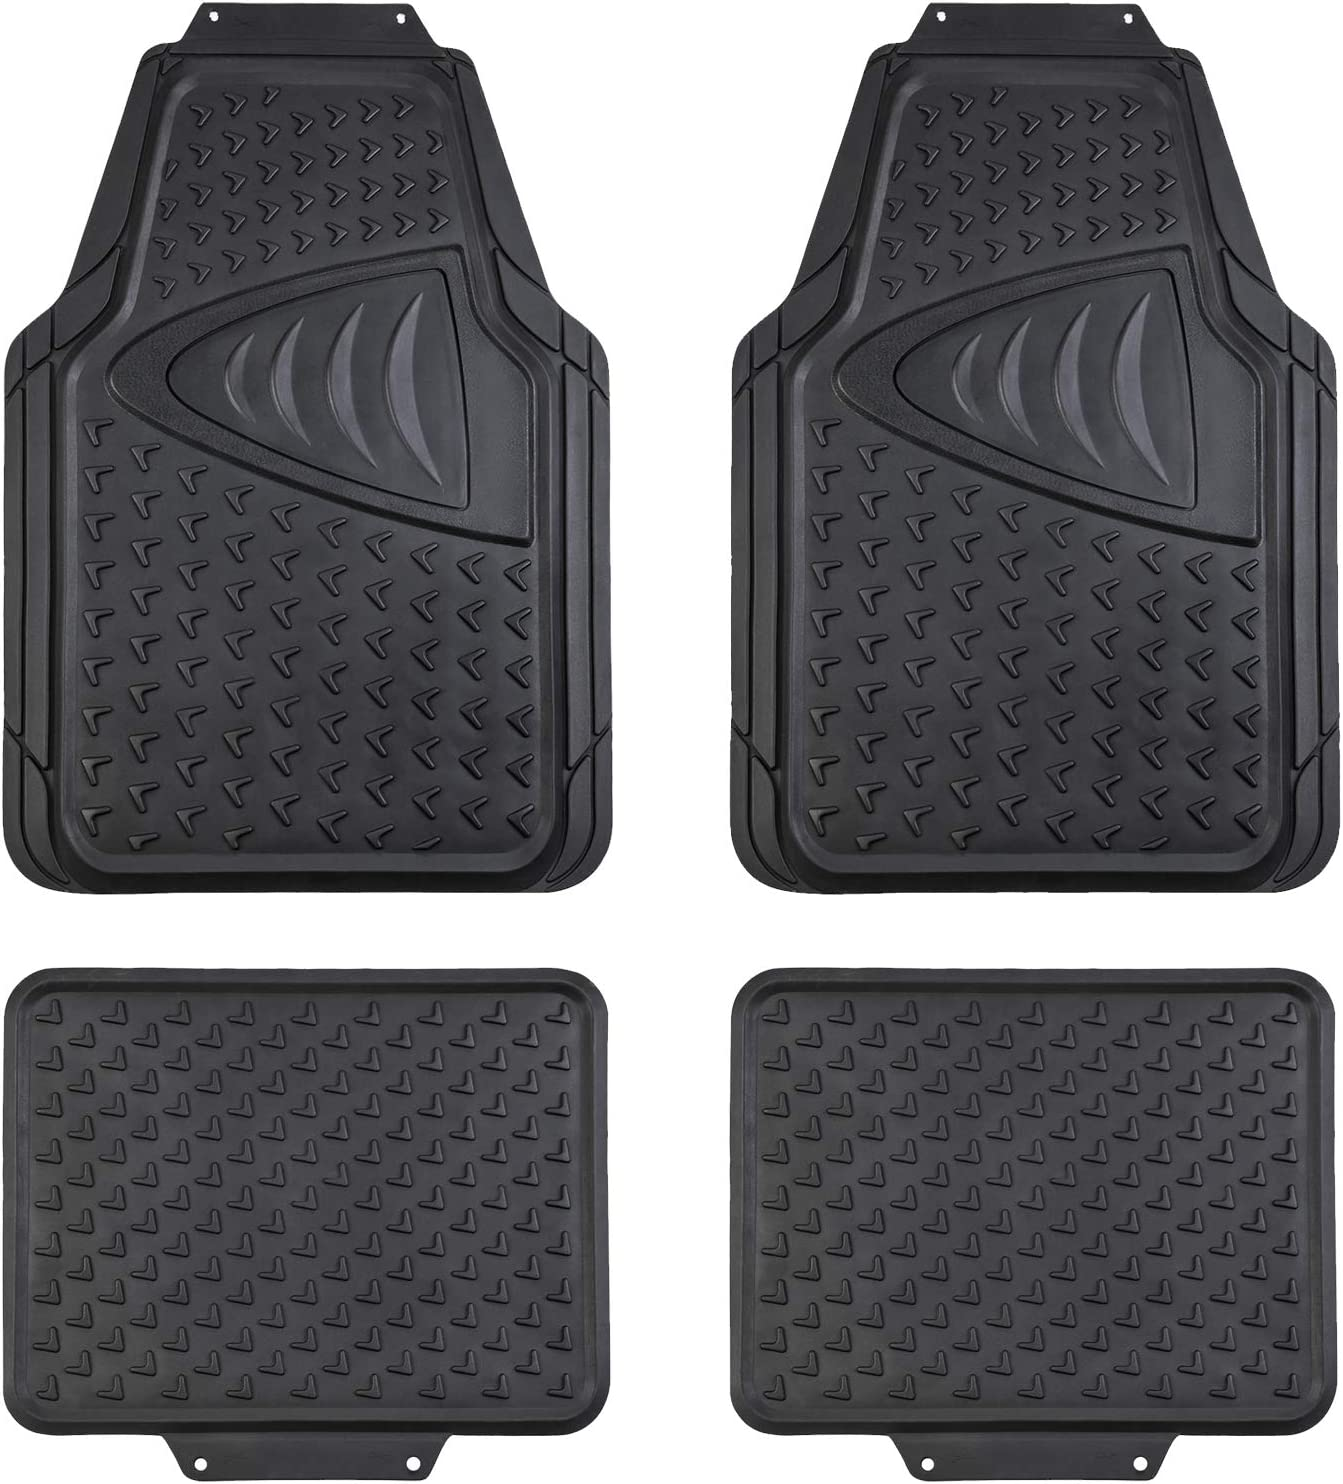 35% OFF August Auto Universal Fit All Weather Max 56% OFF Car Rubber Set of Flo 4pcs